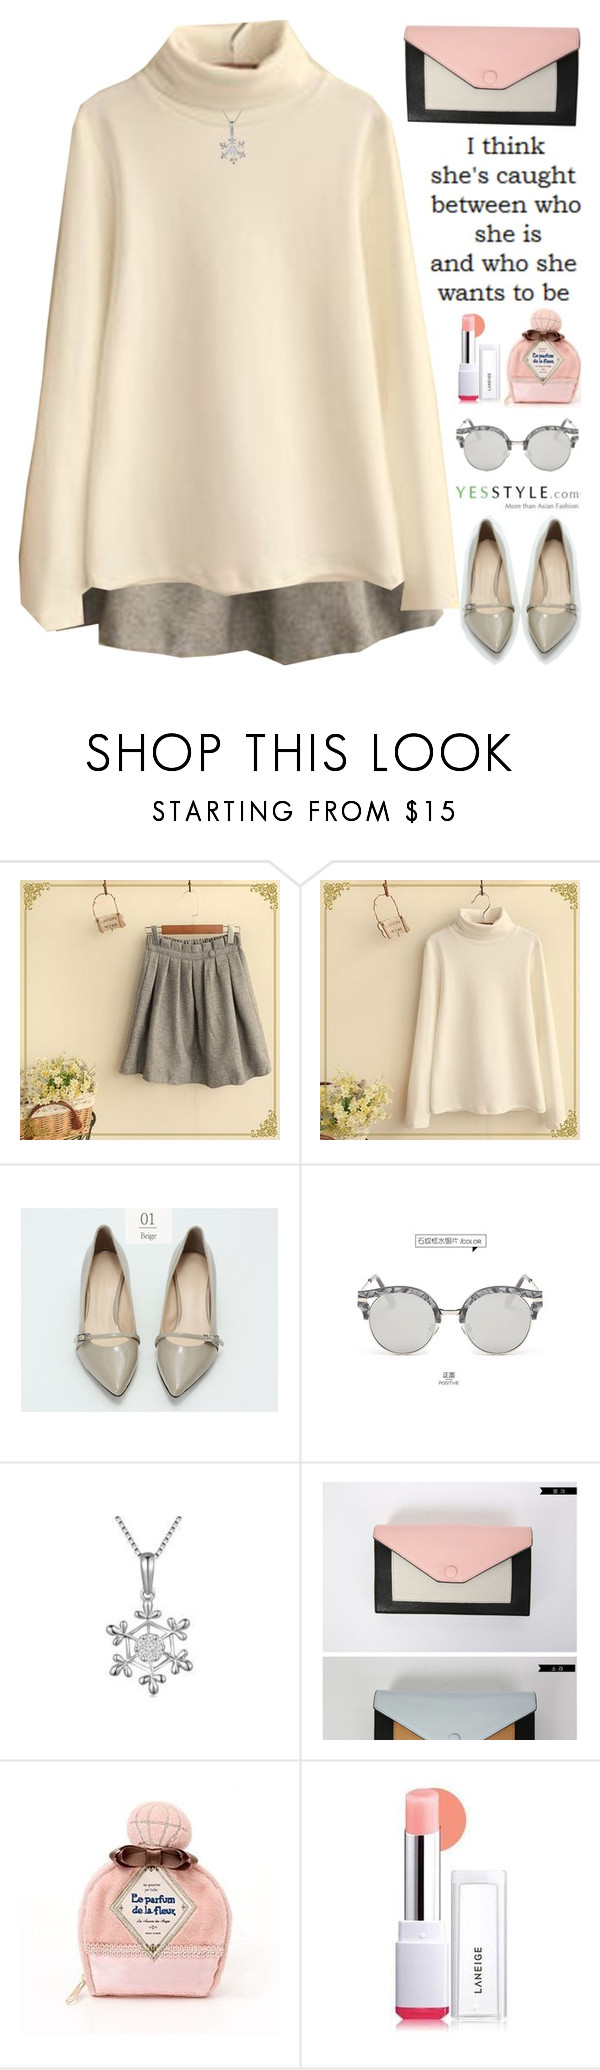 """""""YesStyle - Spring Fashion"""" by scarlett-morwenna ❤ liked on Polyvore featuring Fairyland, Modelsis, AORON, MaBelle, Morococo and Laneige"""